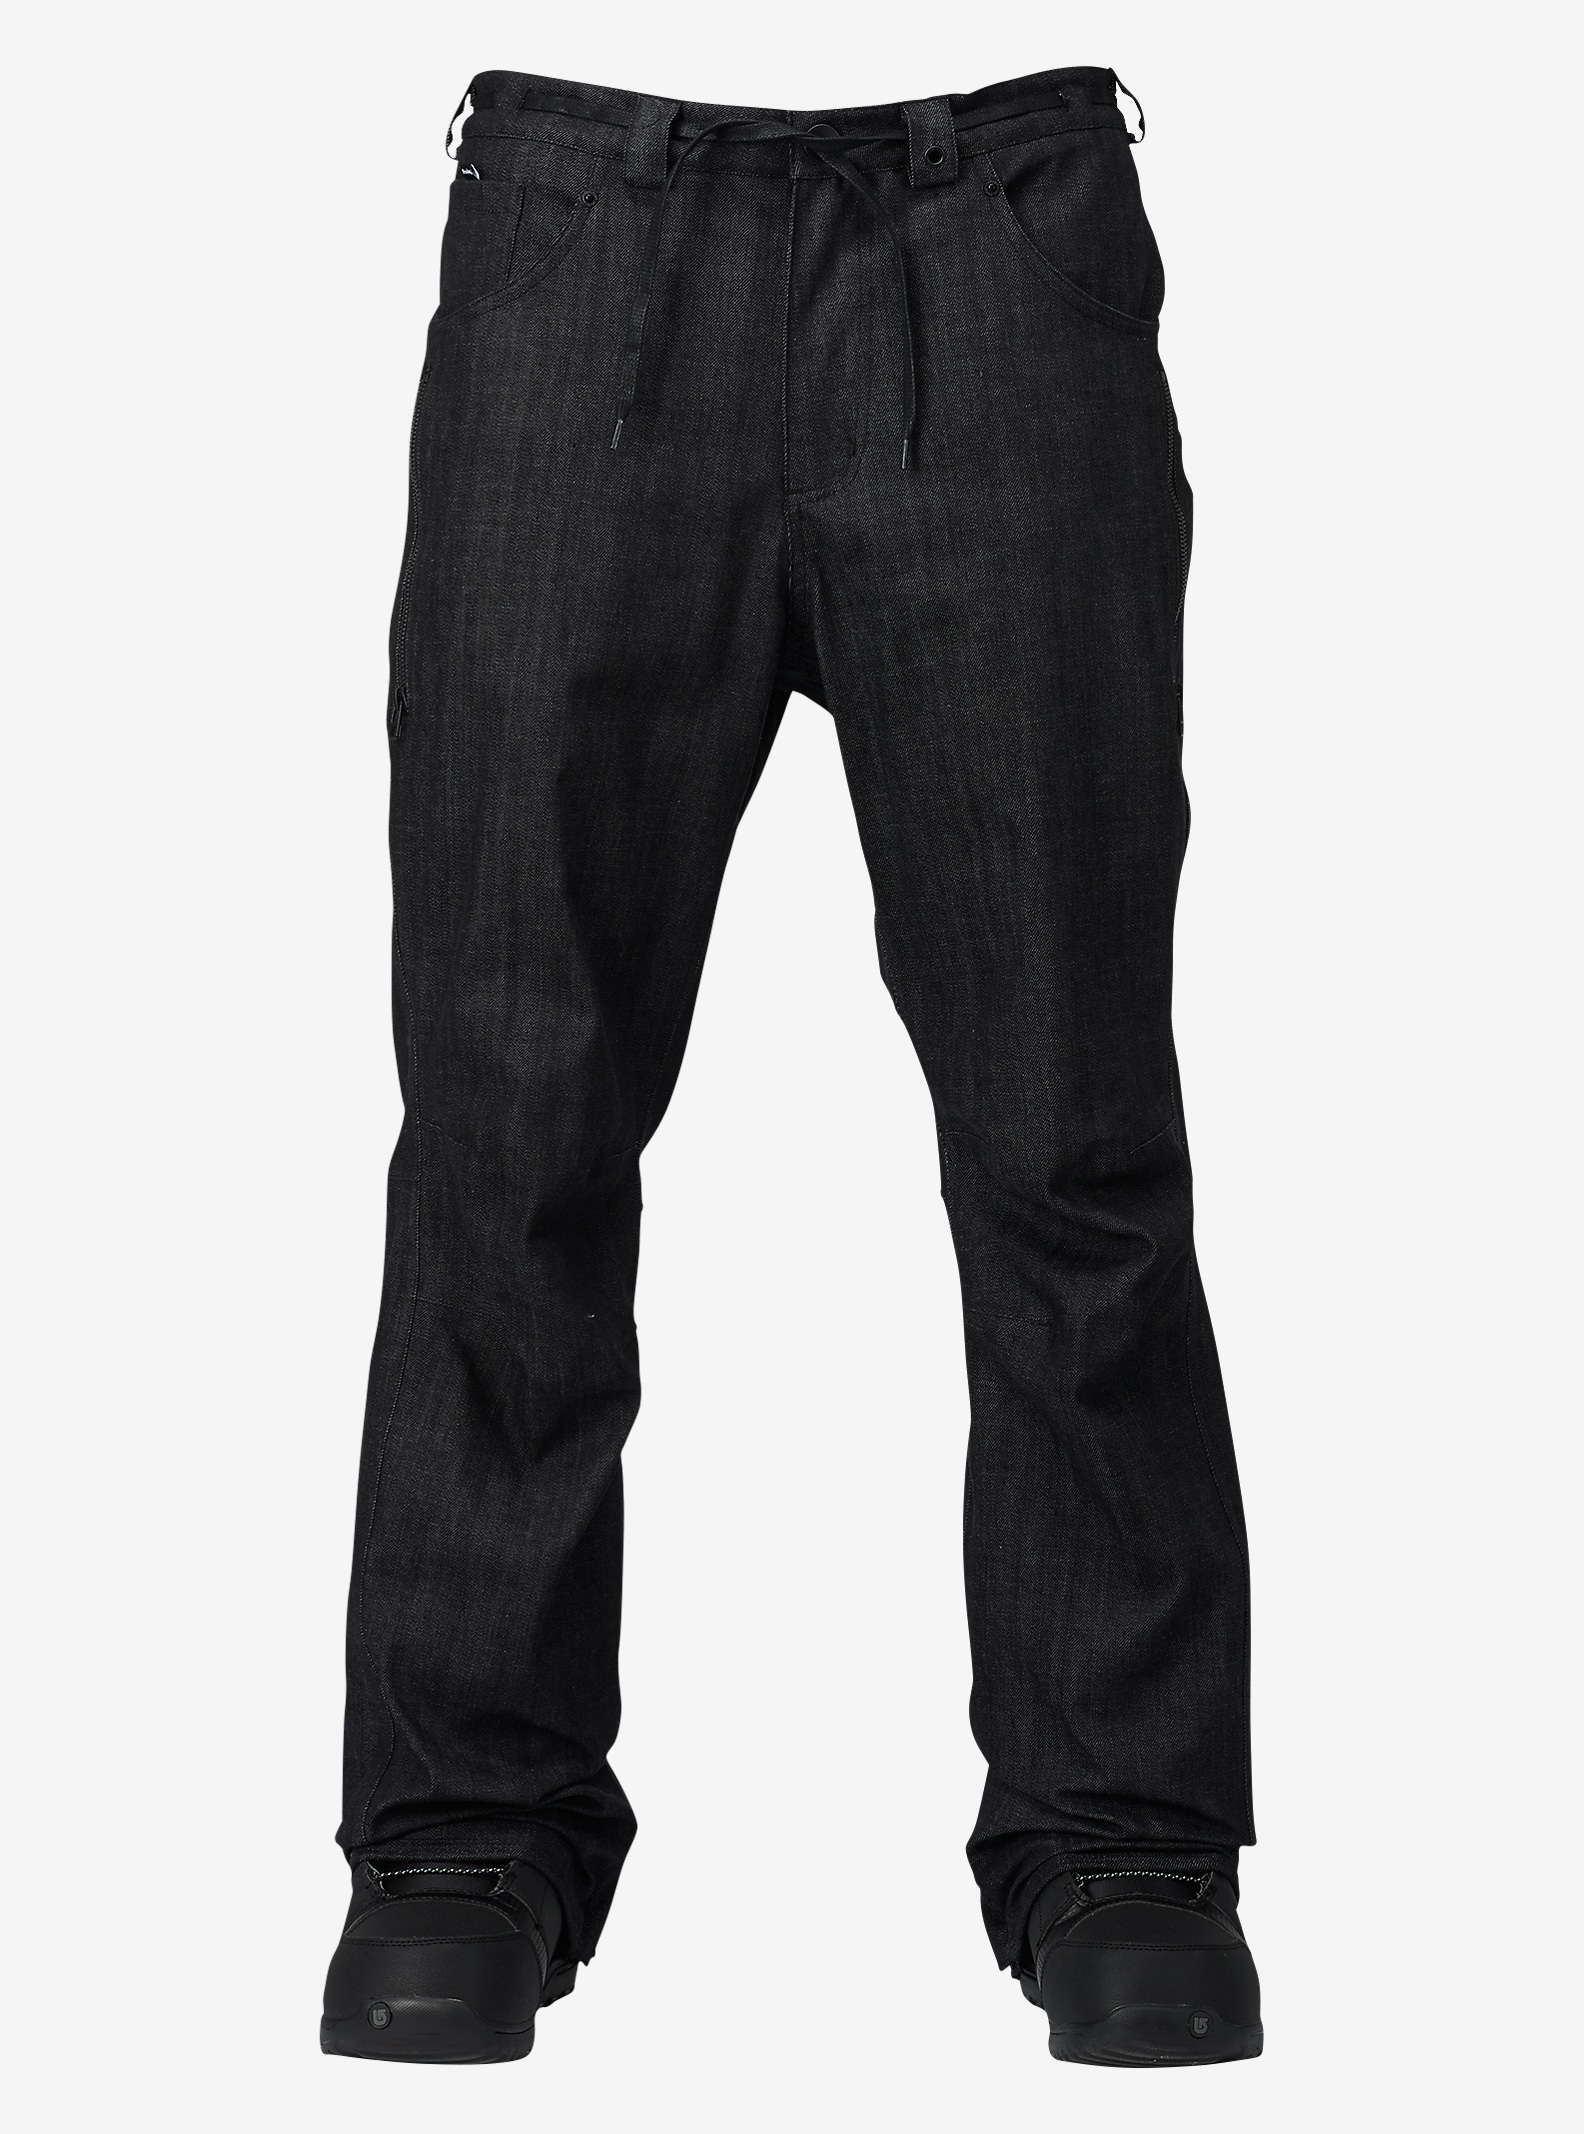 Analog Remer Slouch Pant shown in Black Denim